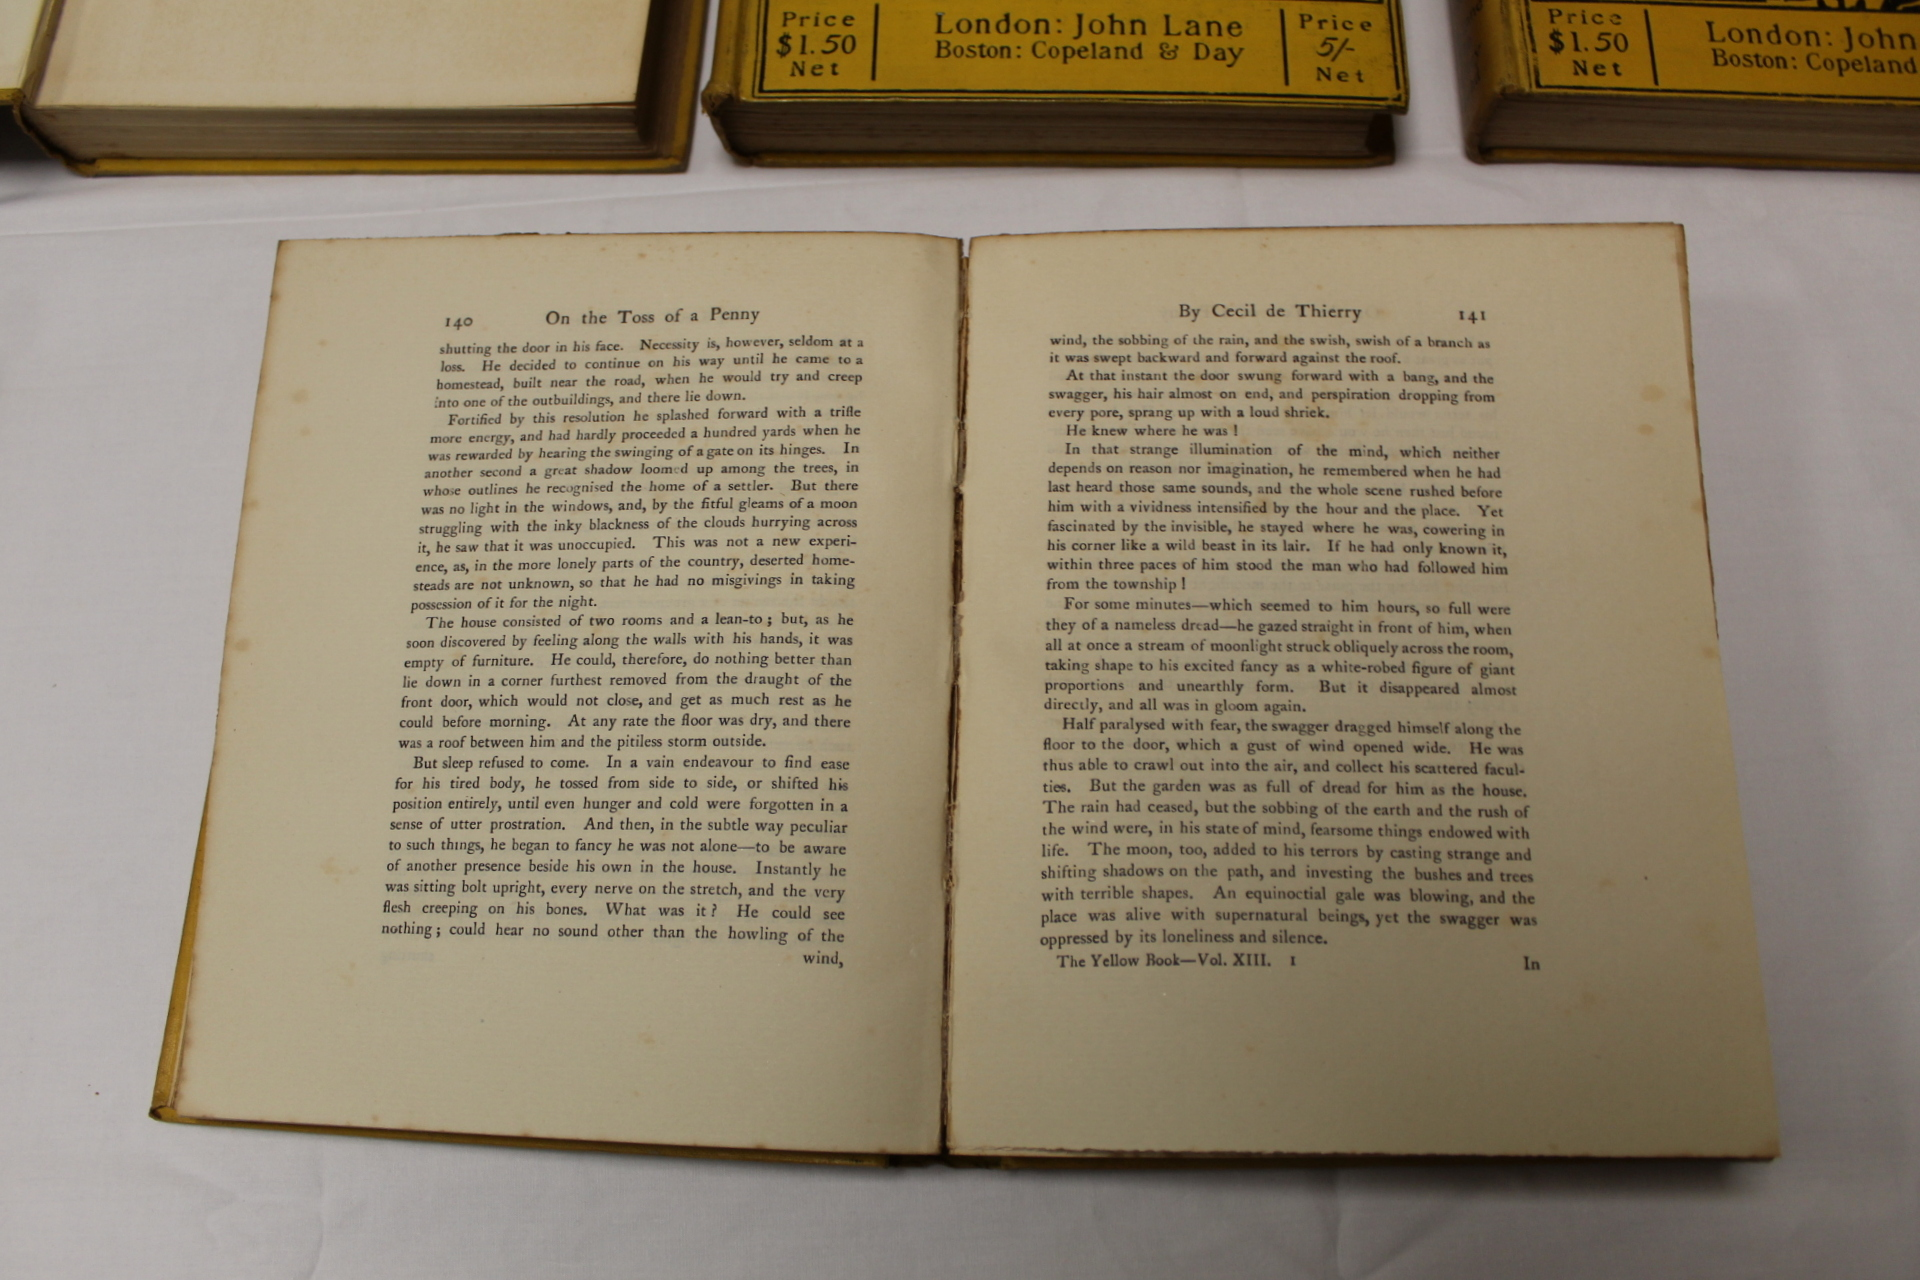 THE YELLOW BOOK.An Illustrated Quarterly. A set of 13 vols., many fine illus. Small quarto. - Image 27 of 45